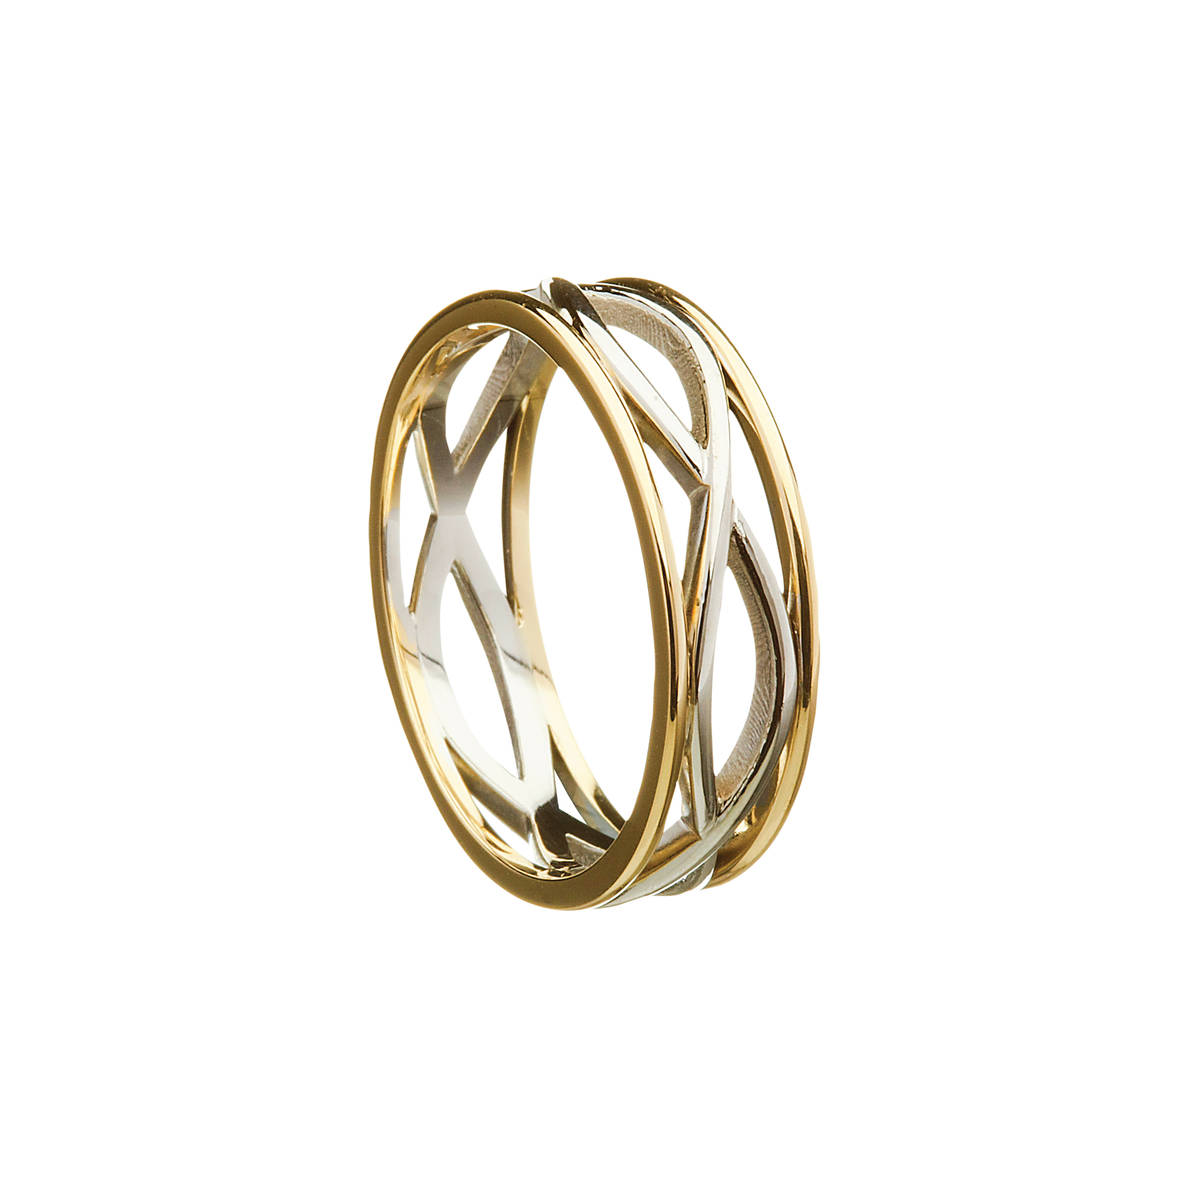 14 carat white gold man'stwo lines entwined open Celtic ringwith light yellow rims.Adelicately intricate ring which looks beautiful.